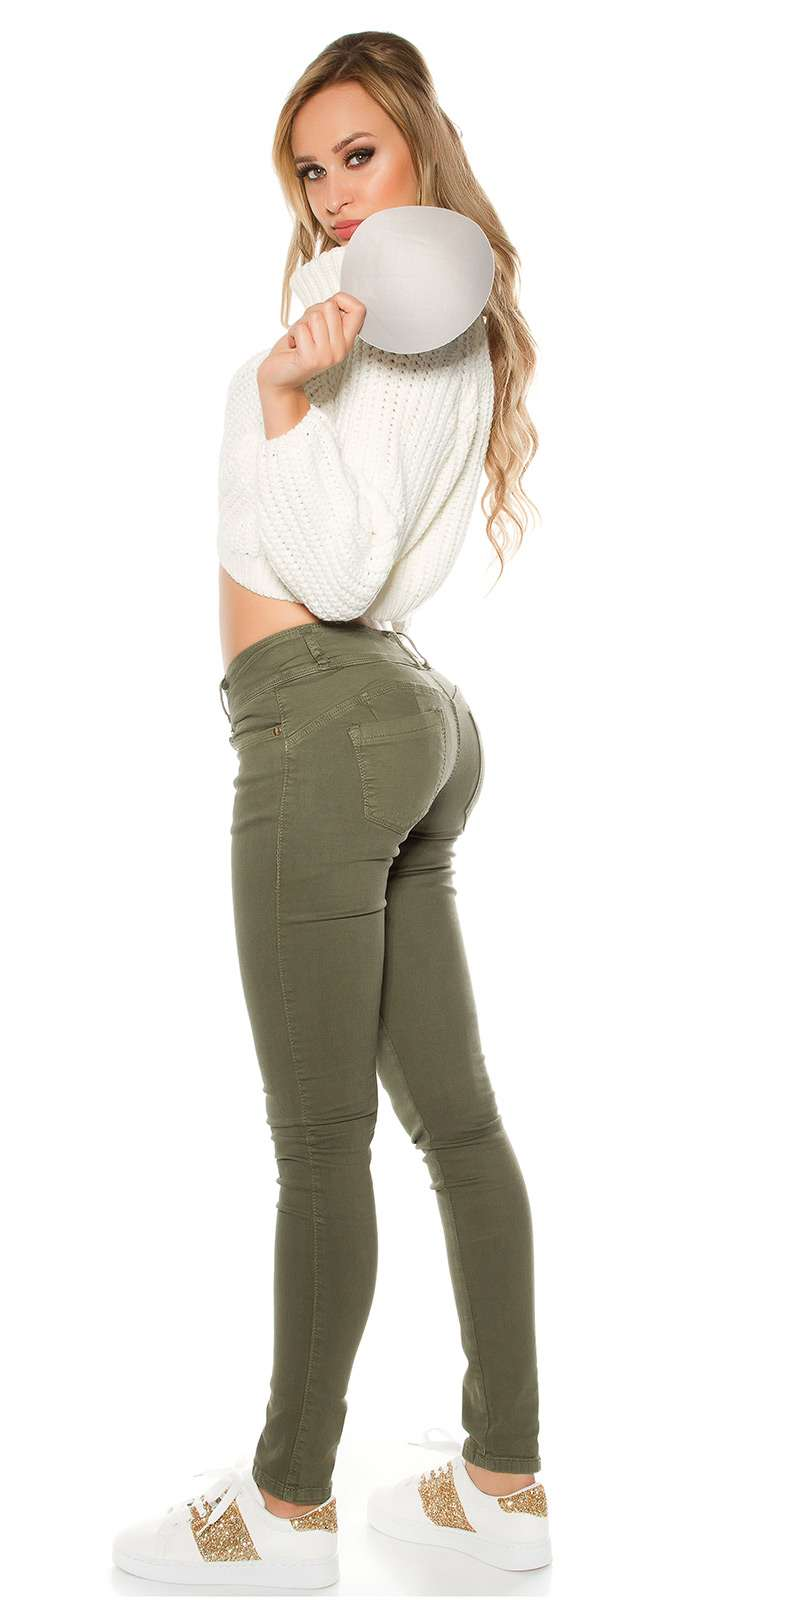 MAGIC BOOTY Jeans